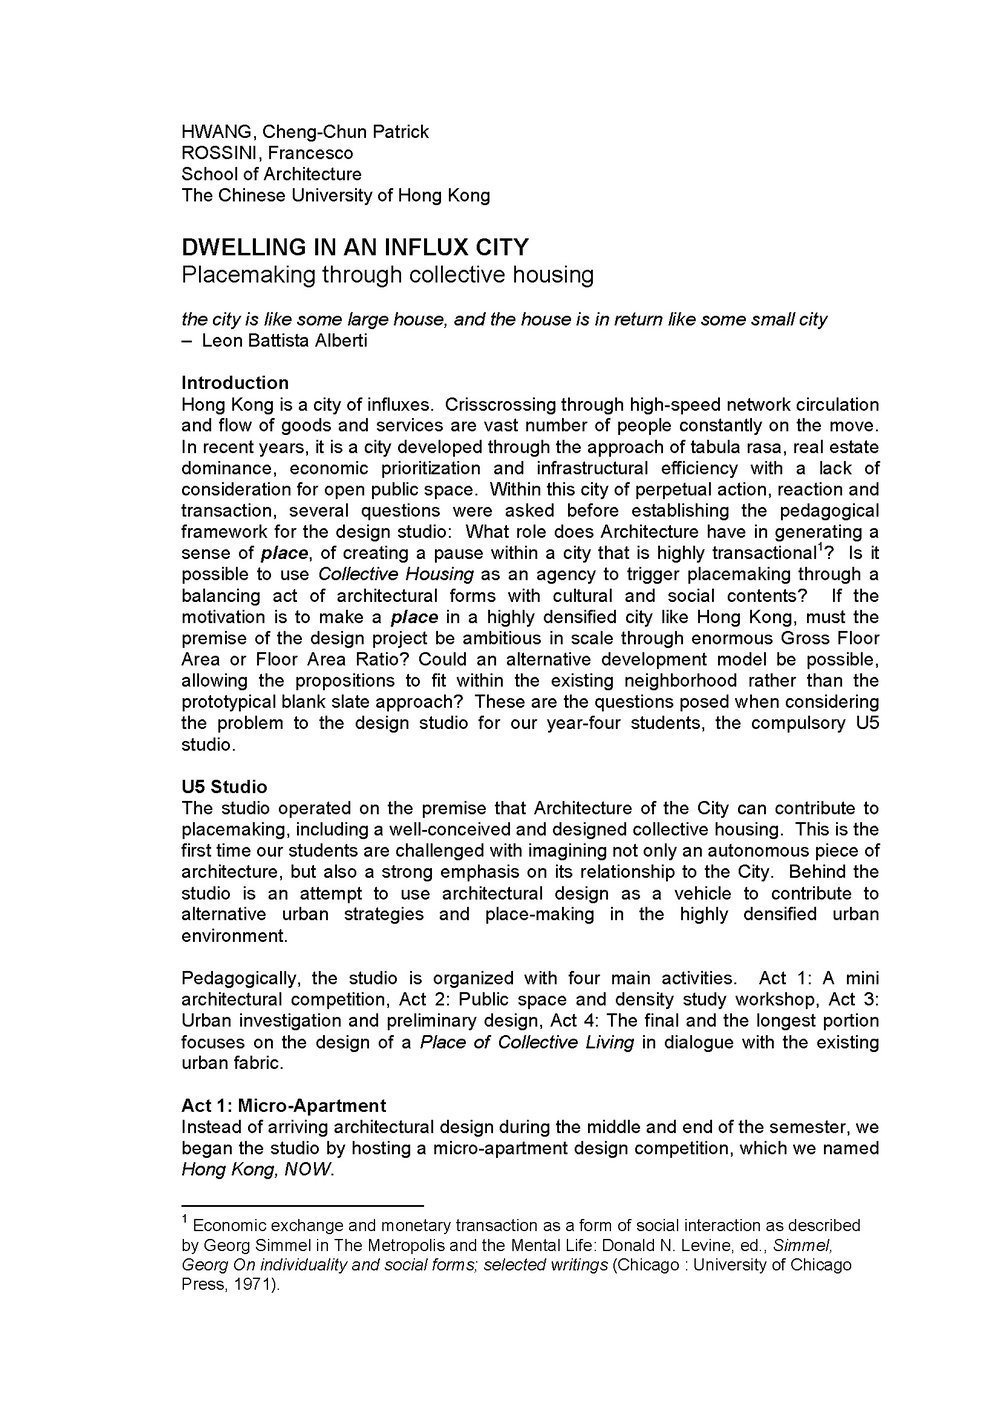 Dwellings in a Influx  City_Hwang_Rossini_UPDATED_Page_1.jpg